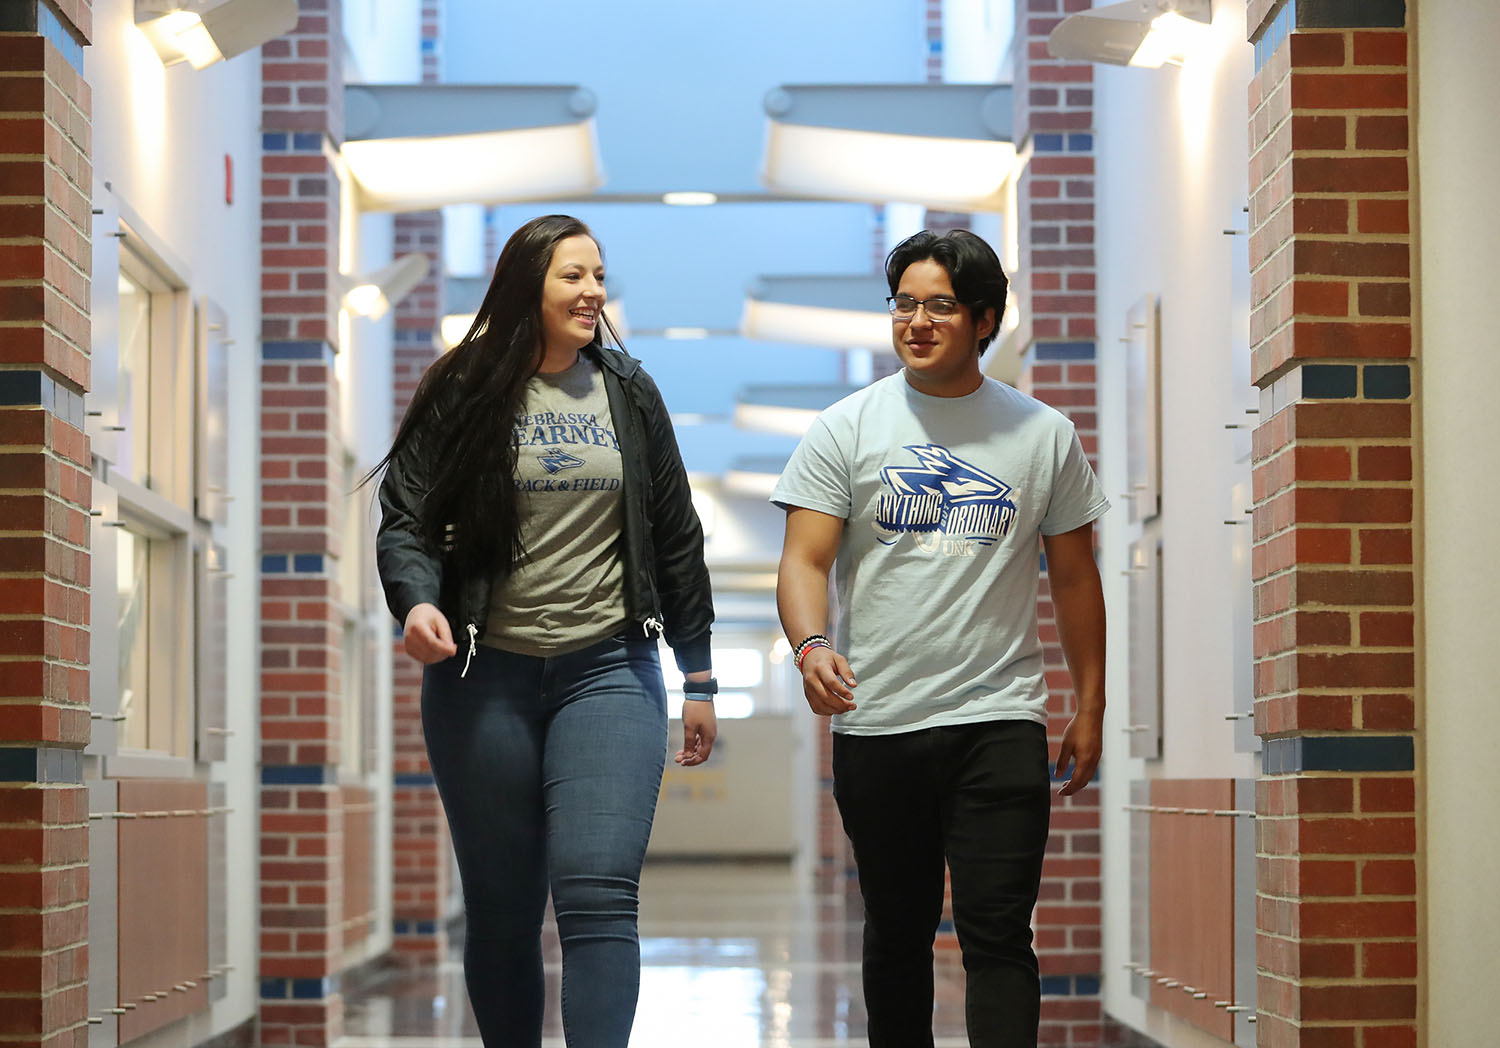 Logan Prater of Colorado Springs, Colorado, and Daniel Ocampo of Omaha both decided to attend UNK because of the financial assistance they receive through scholarships. (Photo by Corbey R. Dorsey, UNK Communications)